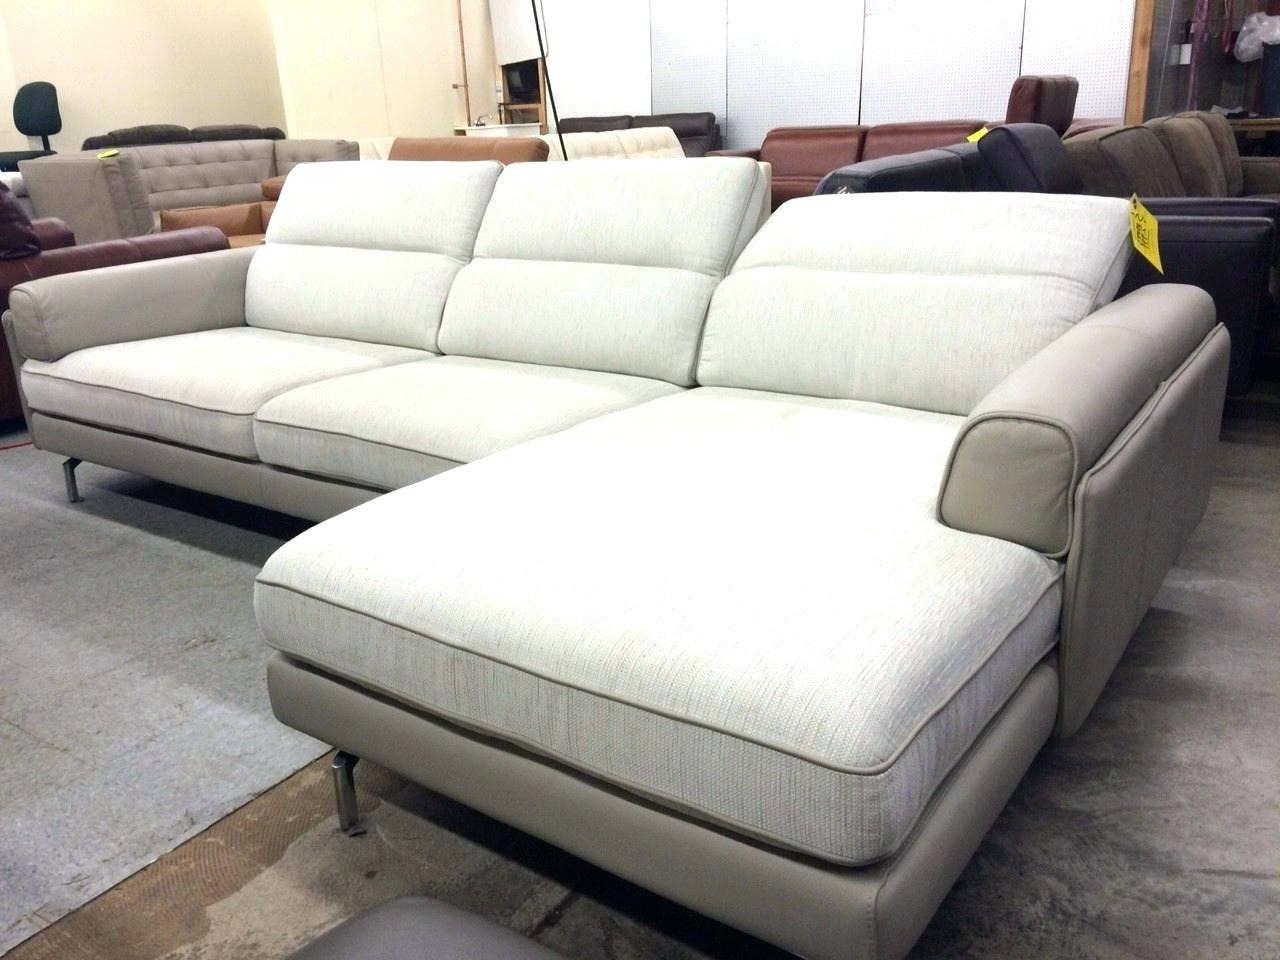 Most Recent Double Chaise Sectional Sofas In Chaise : Wide Chaise Sofa Sectional Extra Wide Chaise Sofa (View 13 of 15)